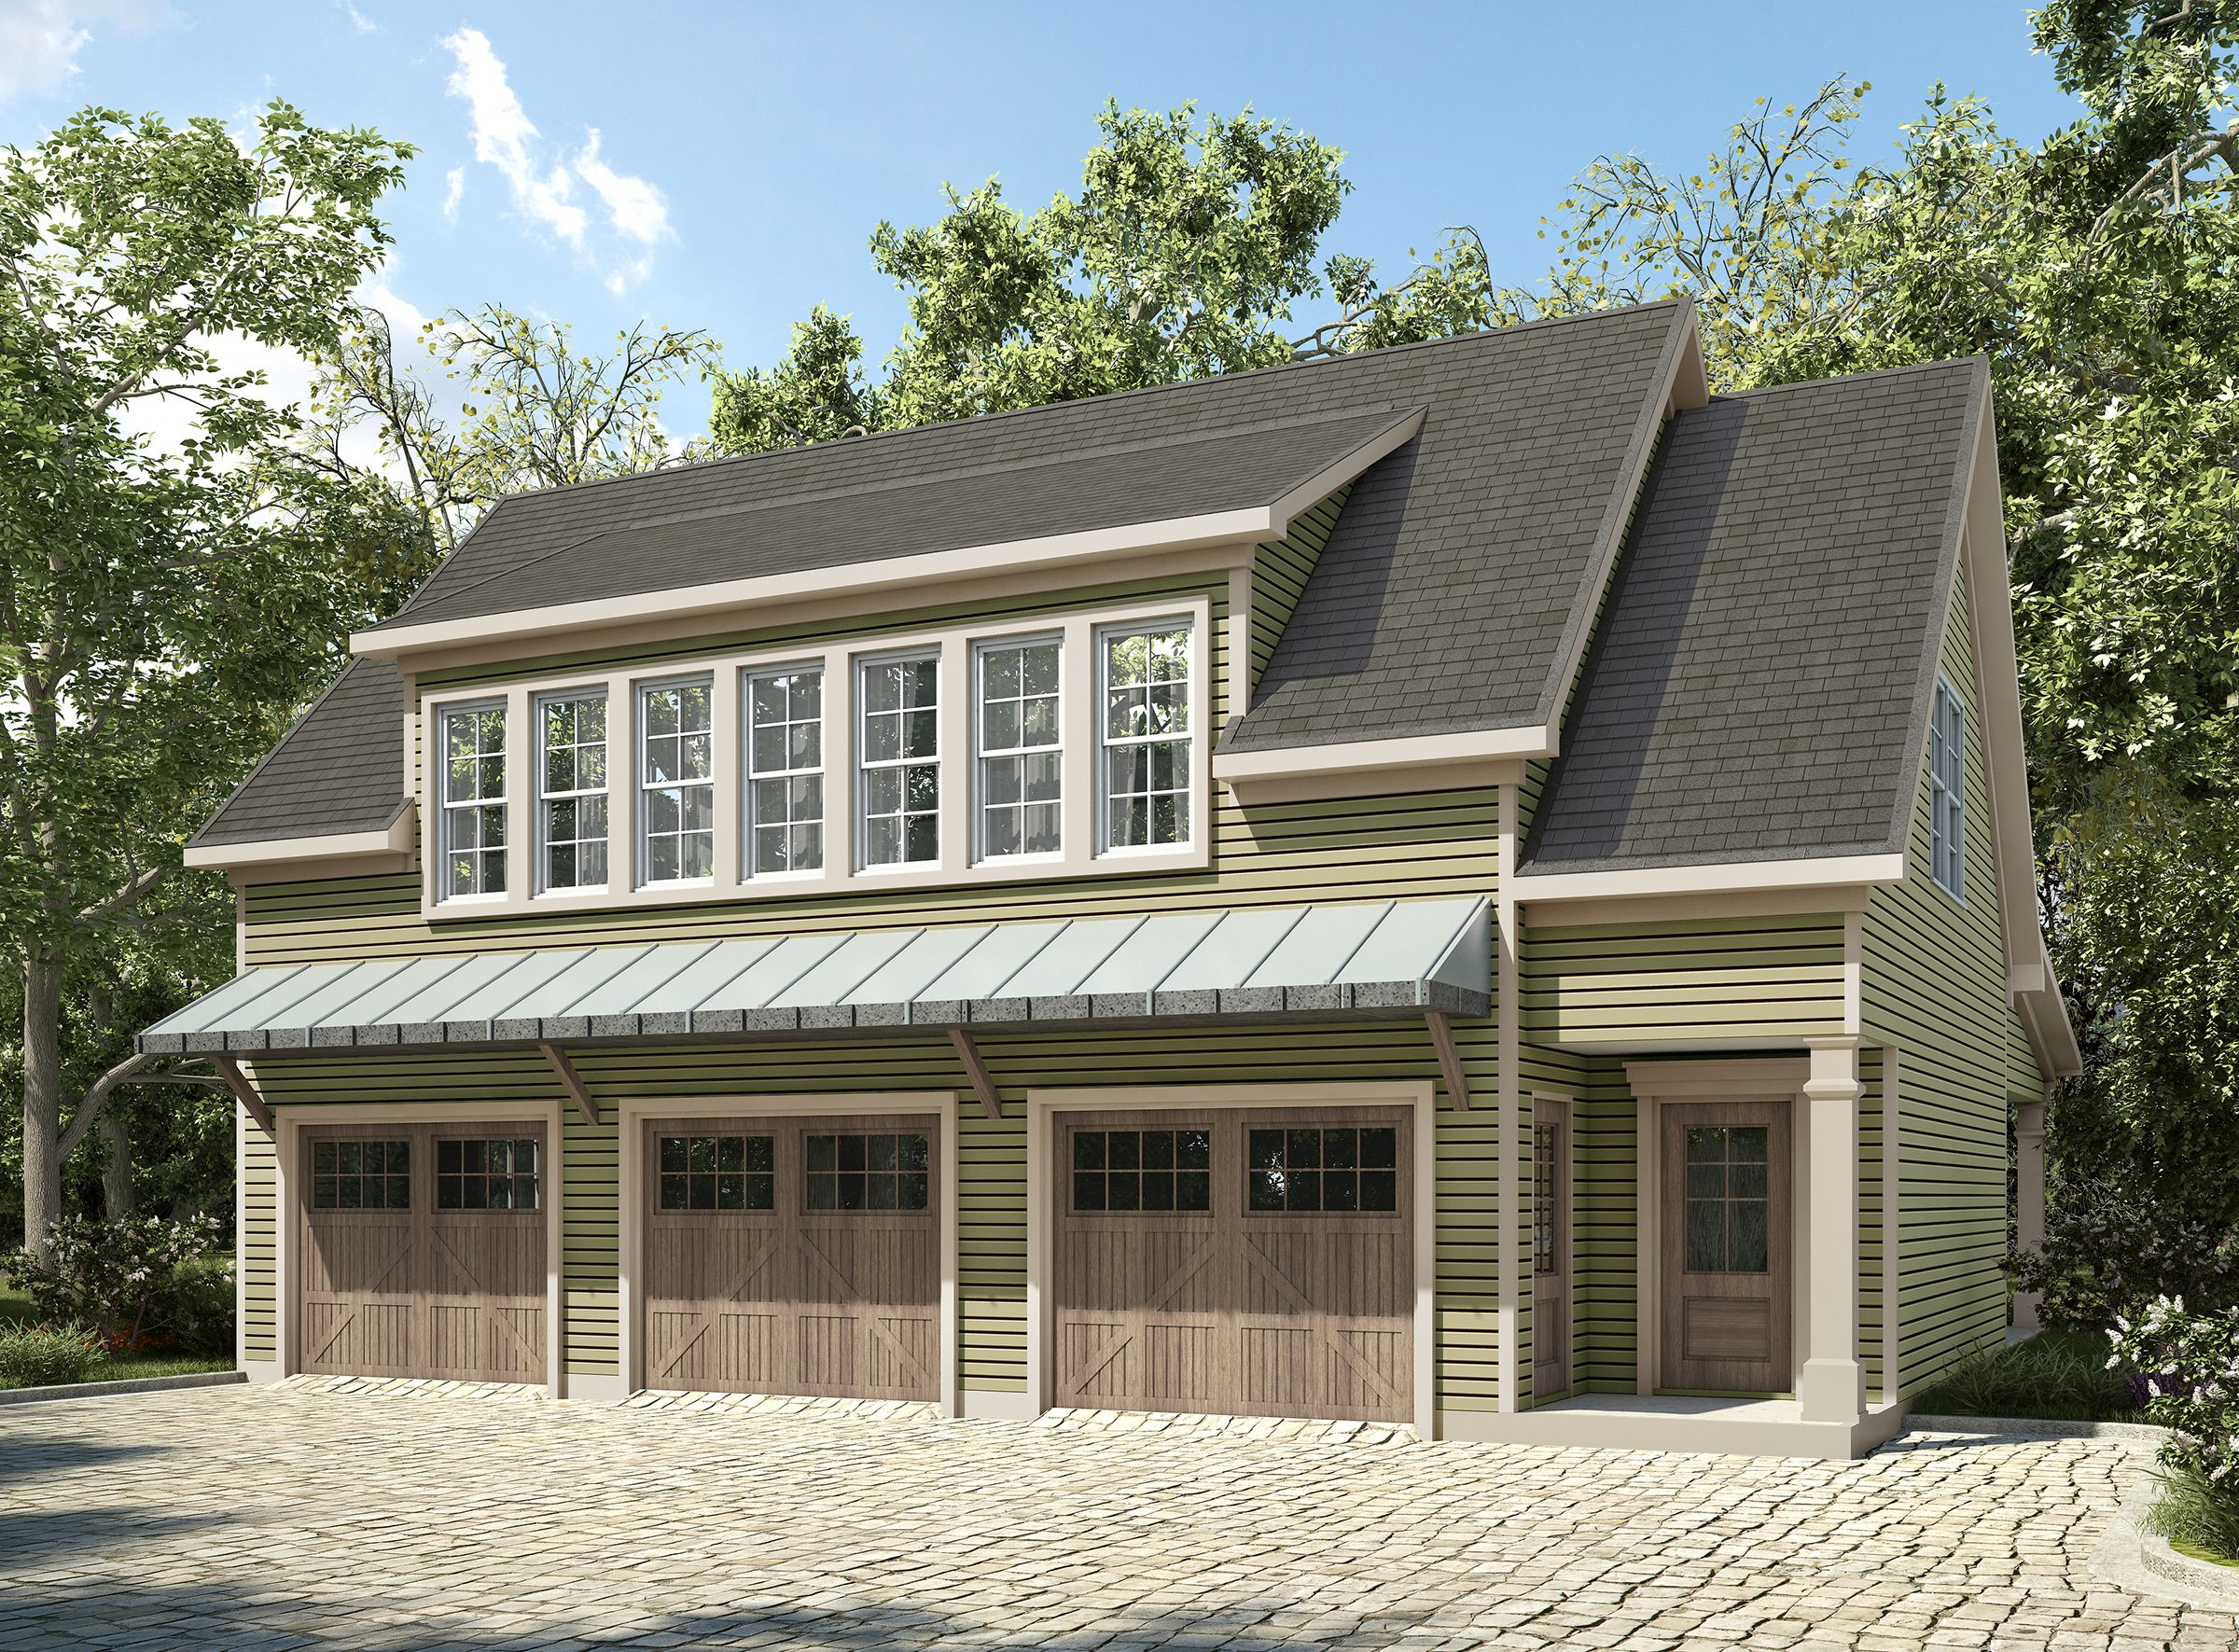 Plan 36057dk 3 bay carriage house plan with shed roof in for Coach house plans